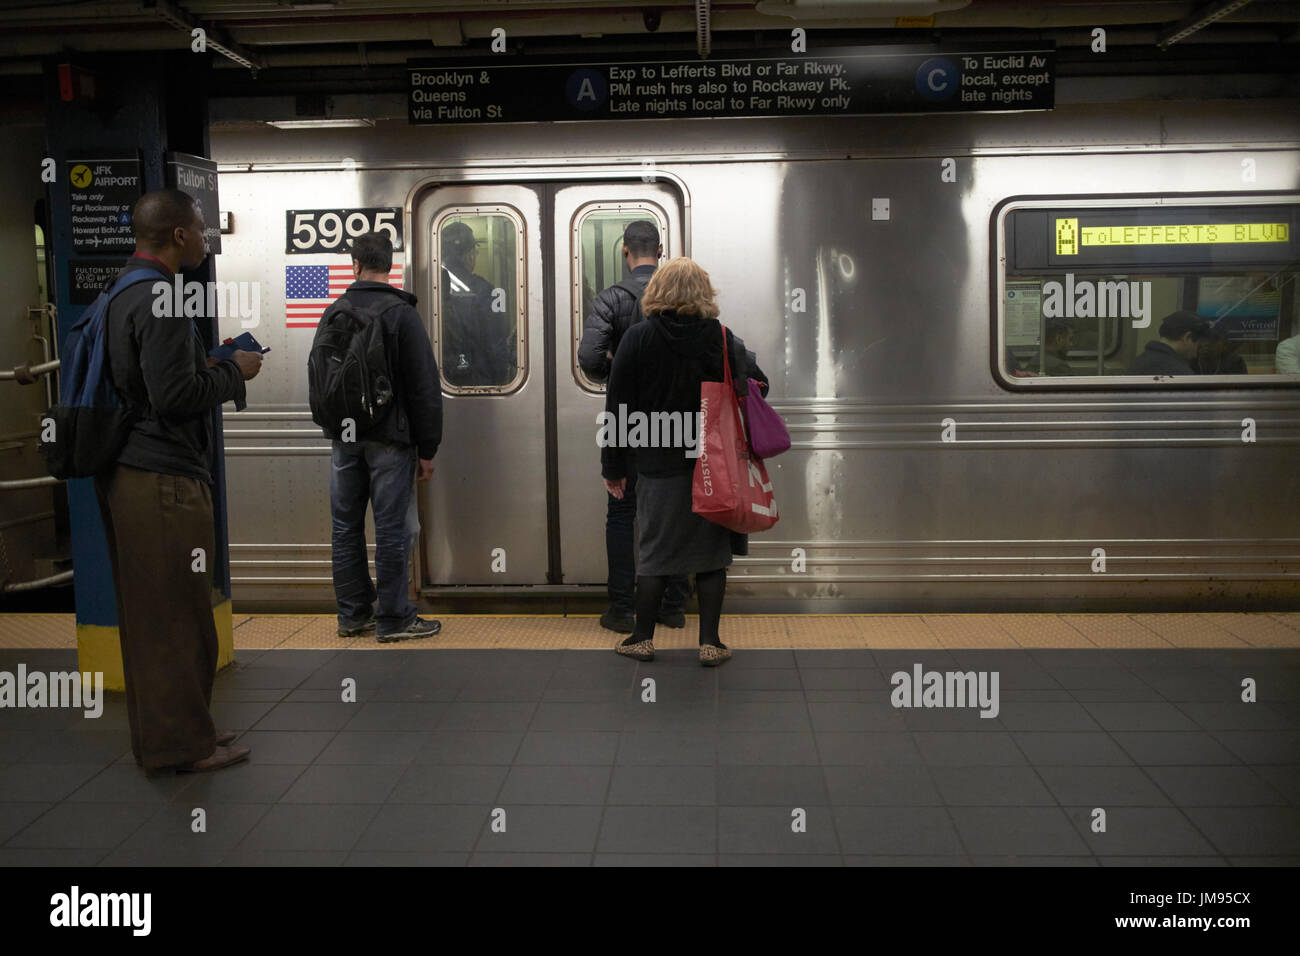 people waiting to board arriving train new york subway New York City USA - Stock Image